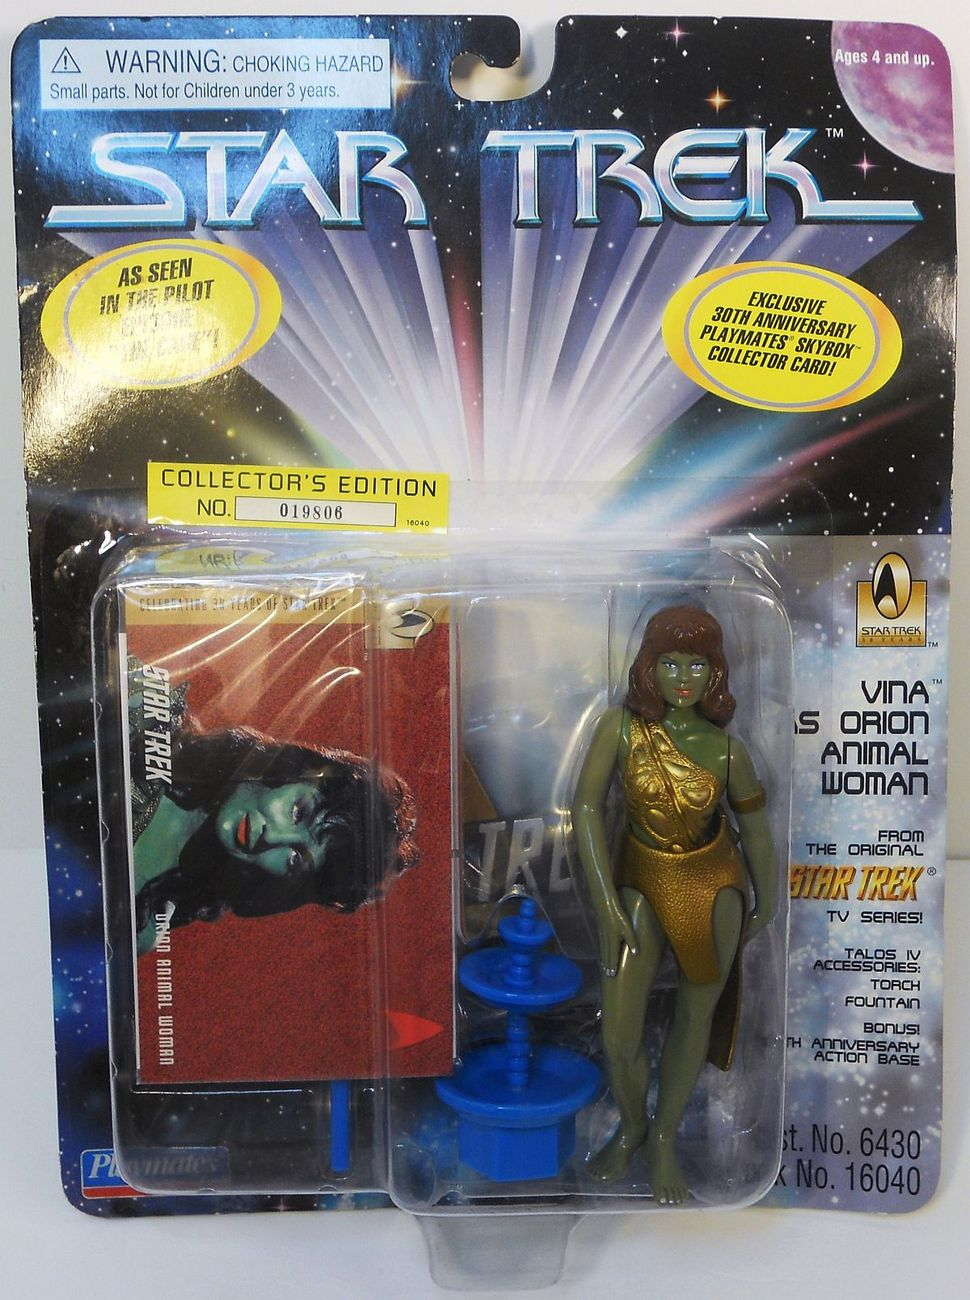 Image 1 of Star Trek TOS Vina as the Orion Girl The Cage Playmates 1996